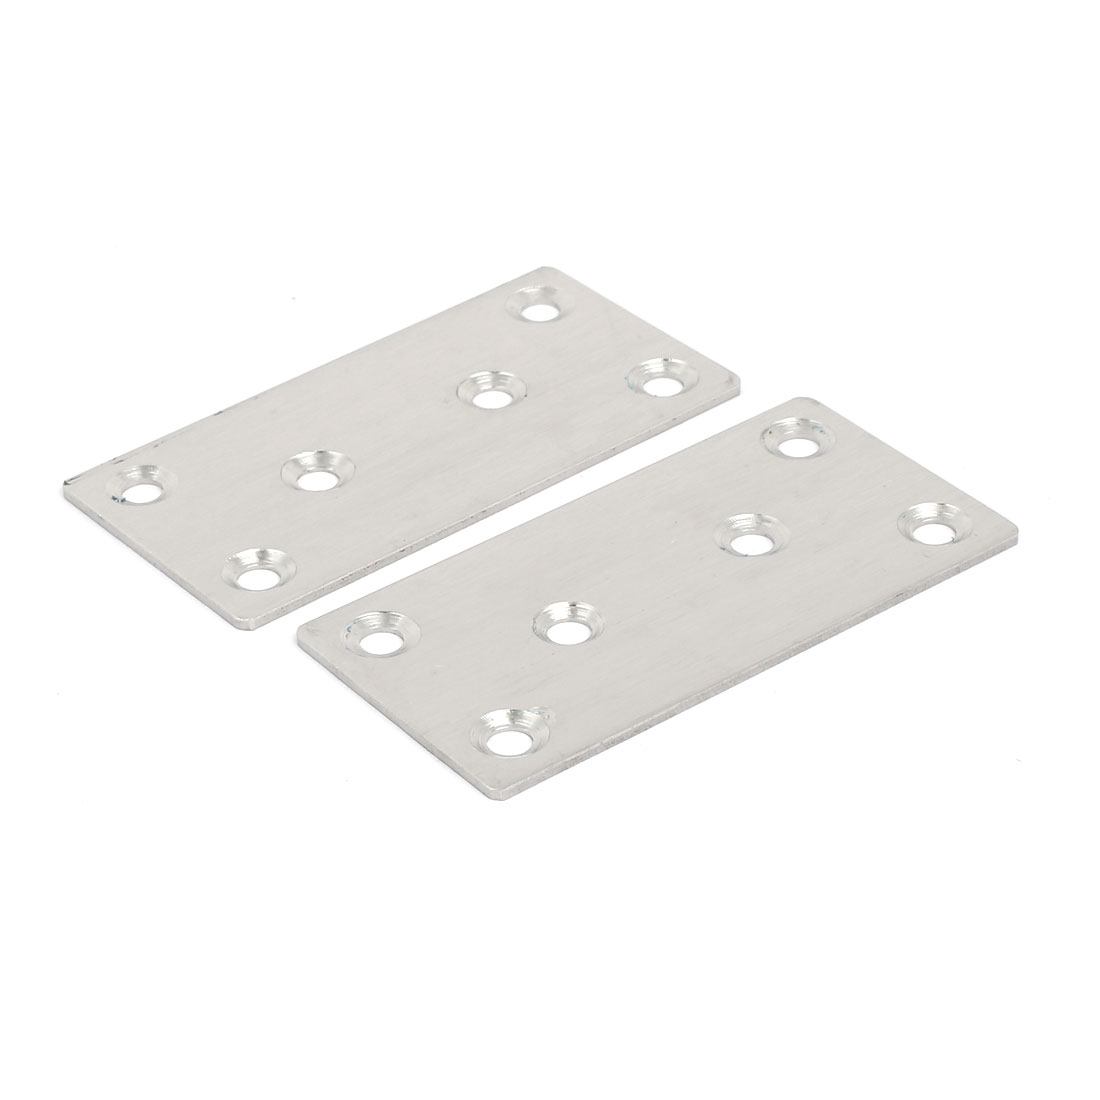 80mmx40mmx2mm Stainless Steel Flat Mending Repair Plate Fixing Bracket 50pcs - image 1 of 3